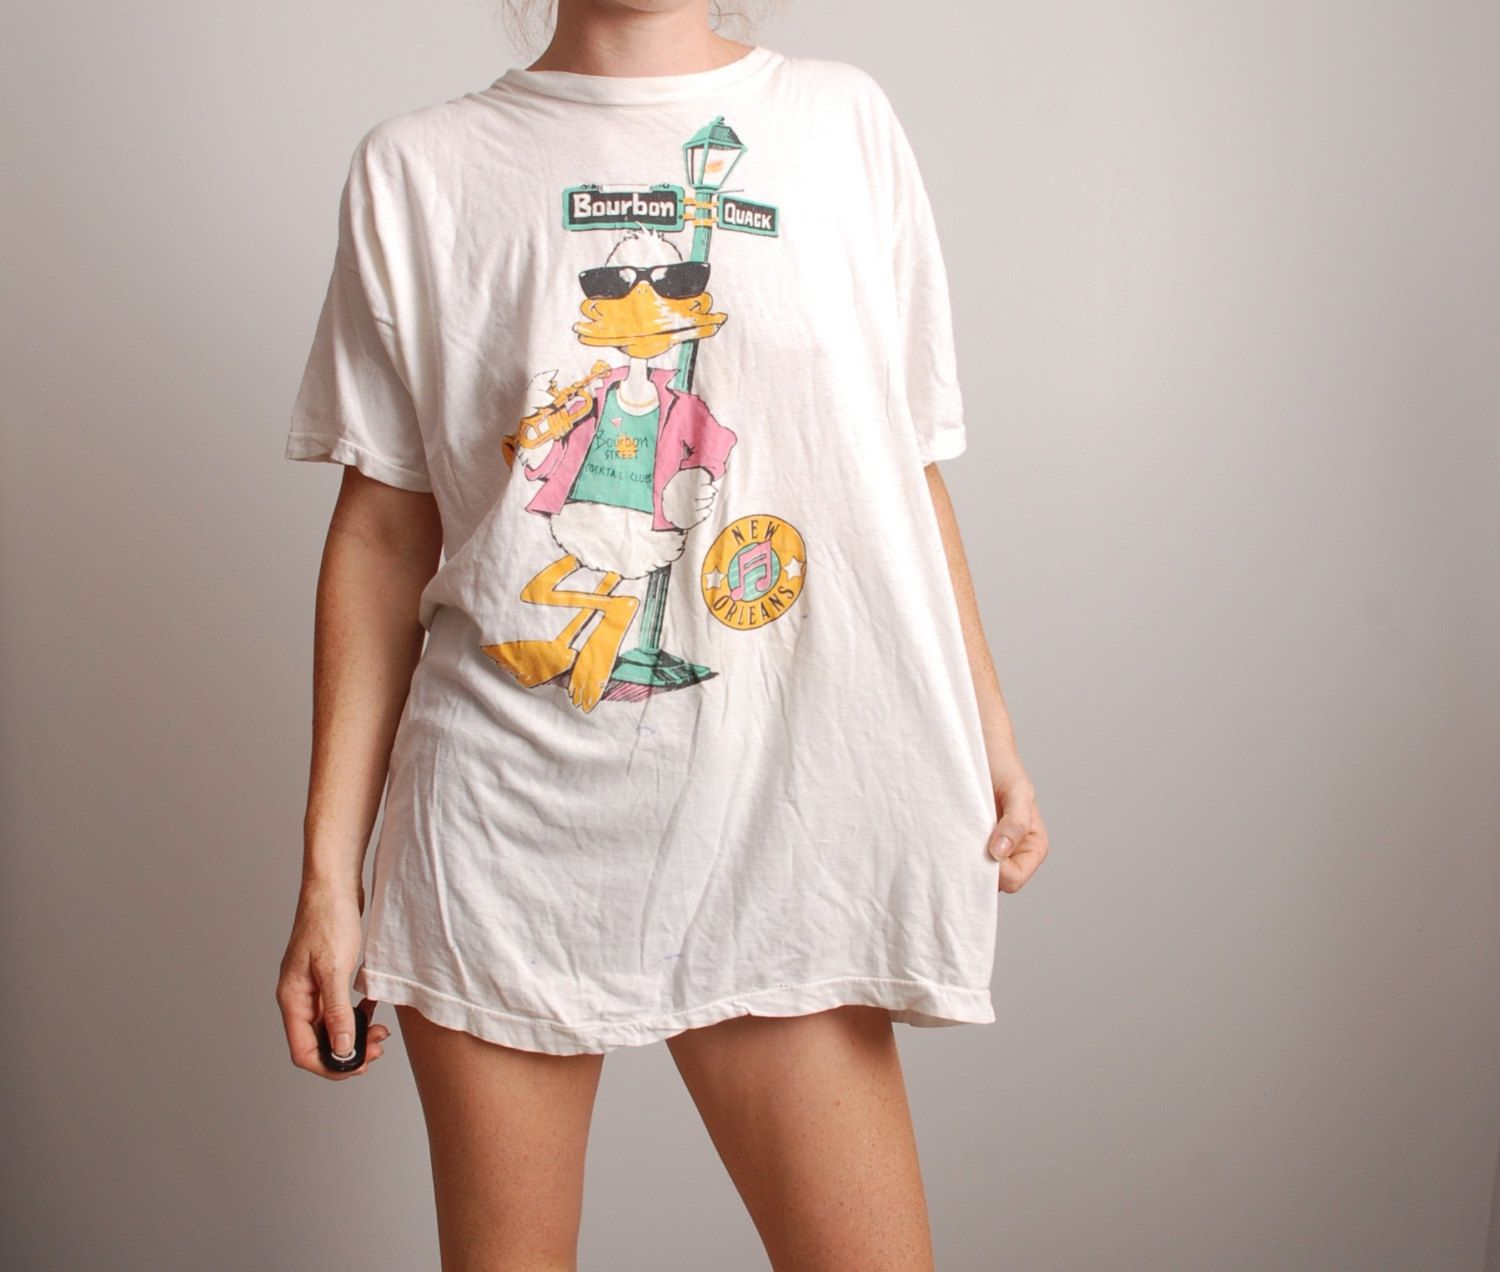 80s large cartoon duck New Orleans Bourbon Street tourism tee thin shirt by furhatguild on Etsy